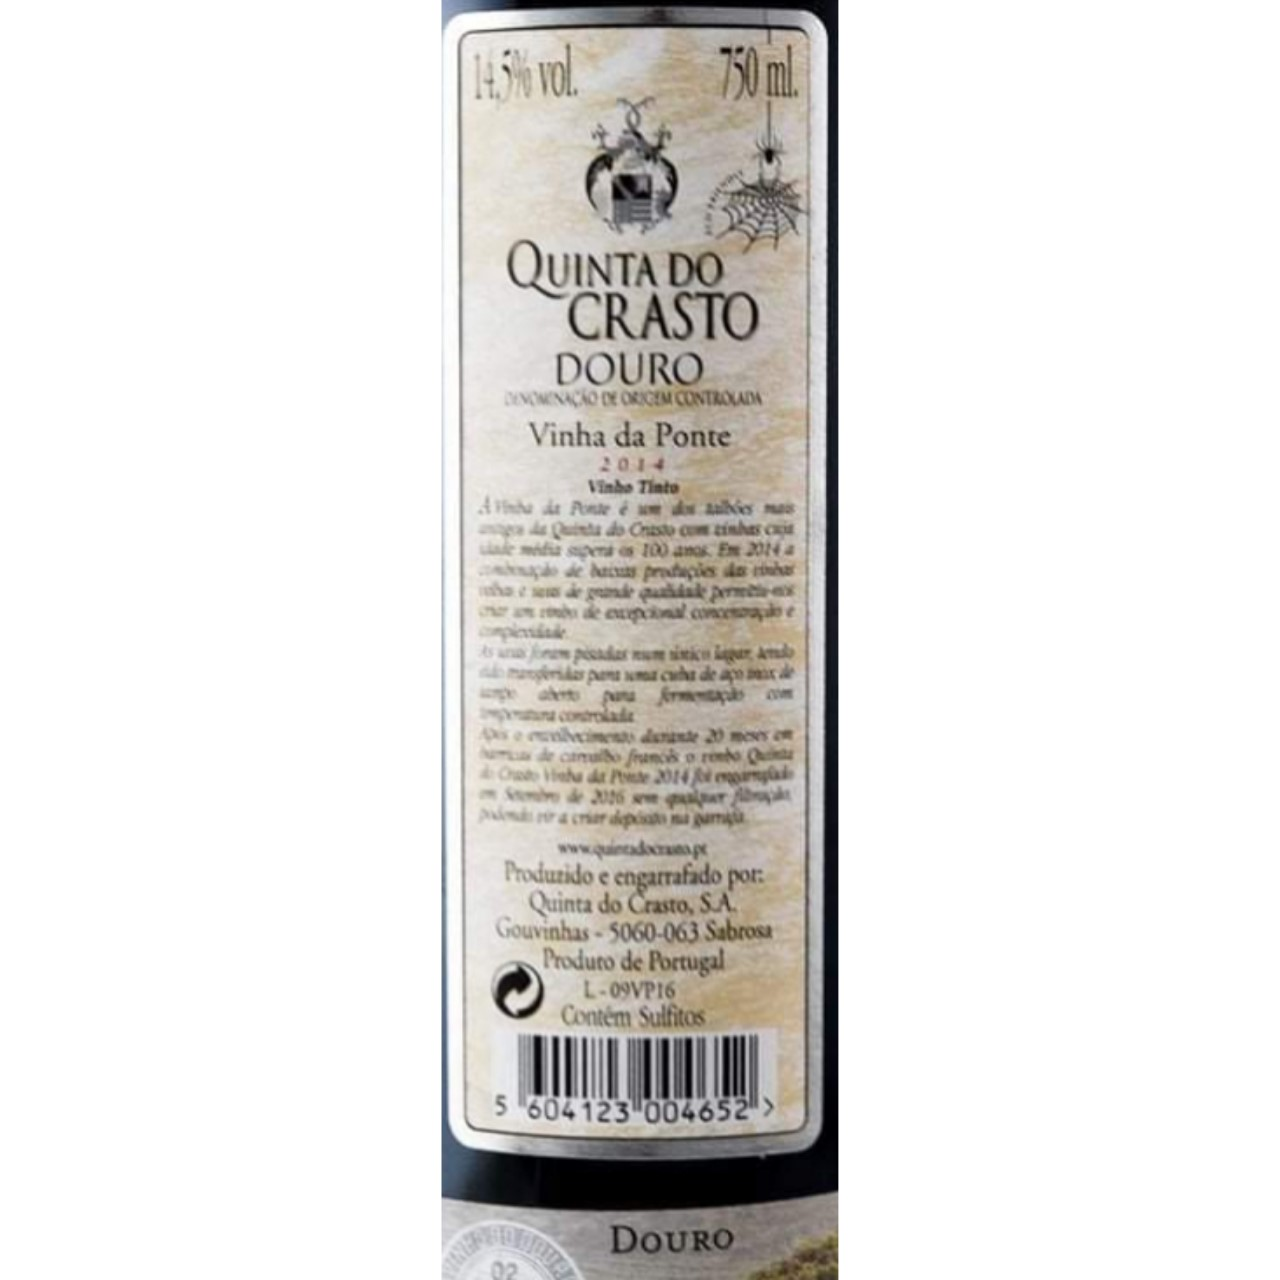 Quinta do Crasto Vinha da Ponte 2014